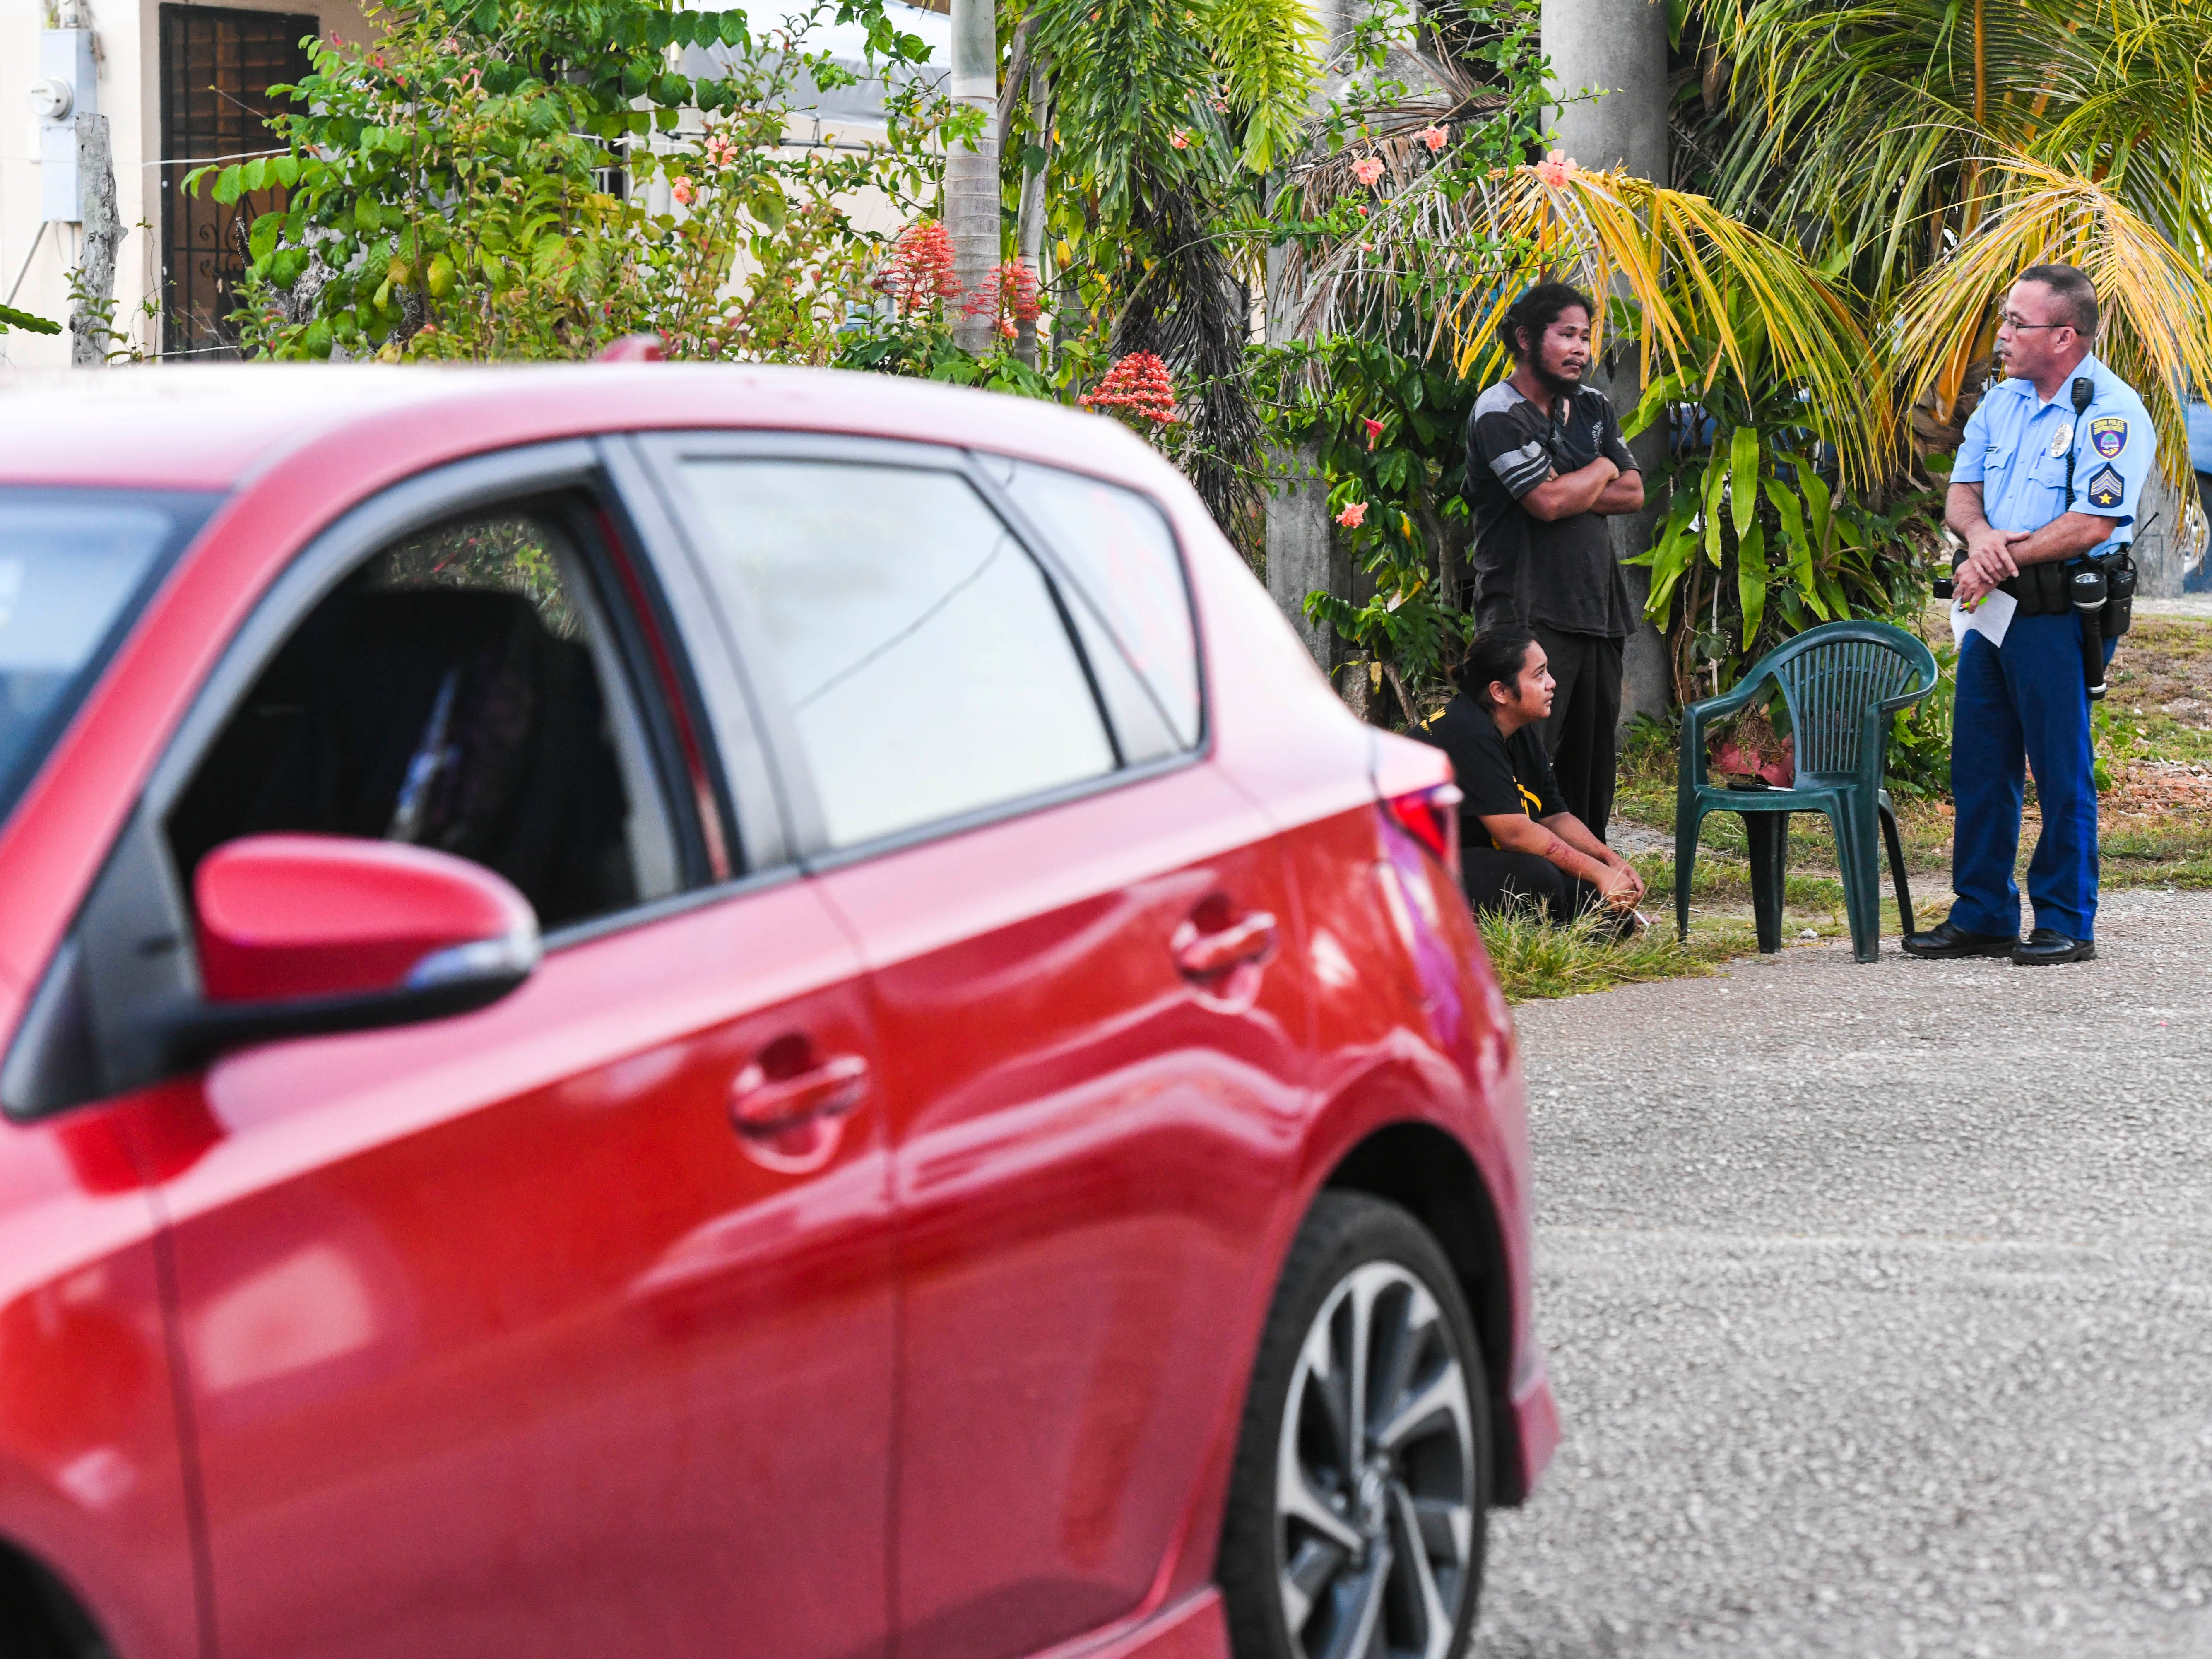 Guam Police Department Officer Jeb Santo Tomas speaks with Ewily Risa, seated, and another individual, during a fatal auto-pedestrian incident in Dededo on the evening of Wednesday, May 7, 2019. Four-year-old Jericho Zion David, died after being struck in front of his family's home, by a Red Toyota Corolla driven by Risa,